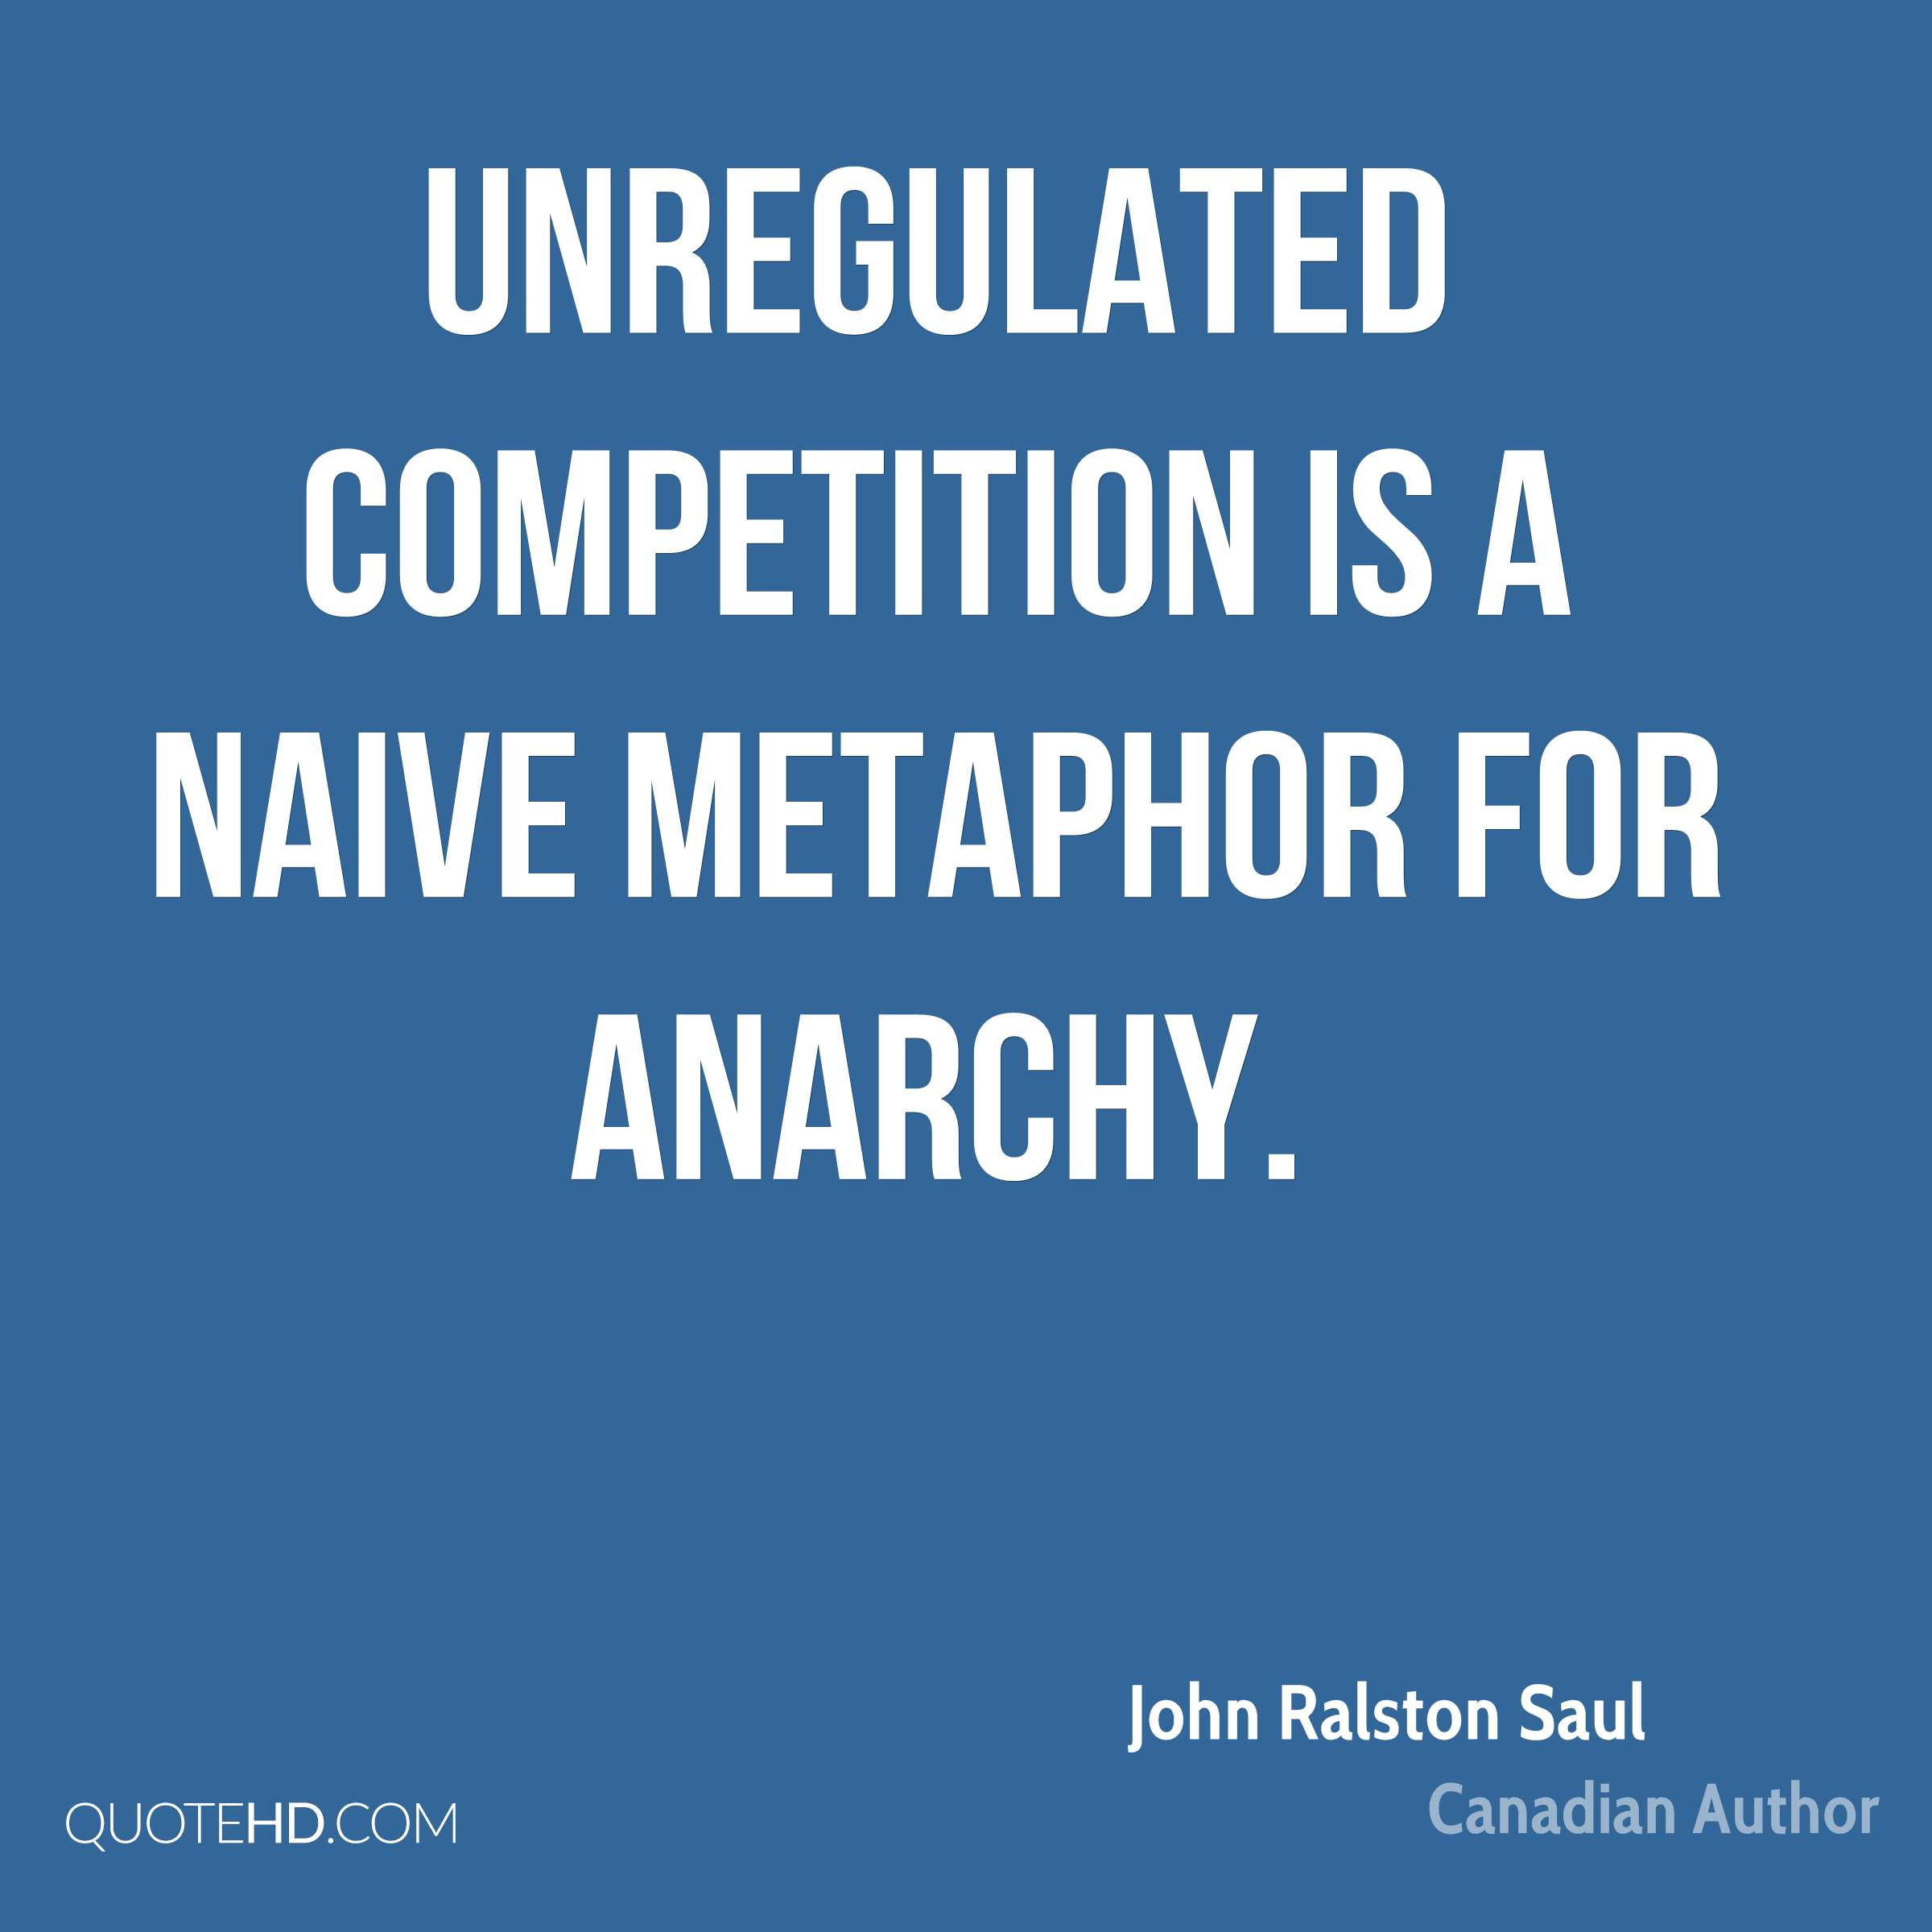 Unregulated competition is a naive metaphor for anarchy.